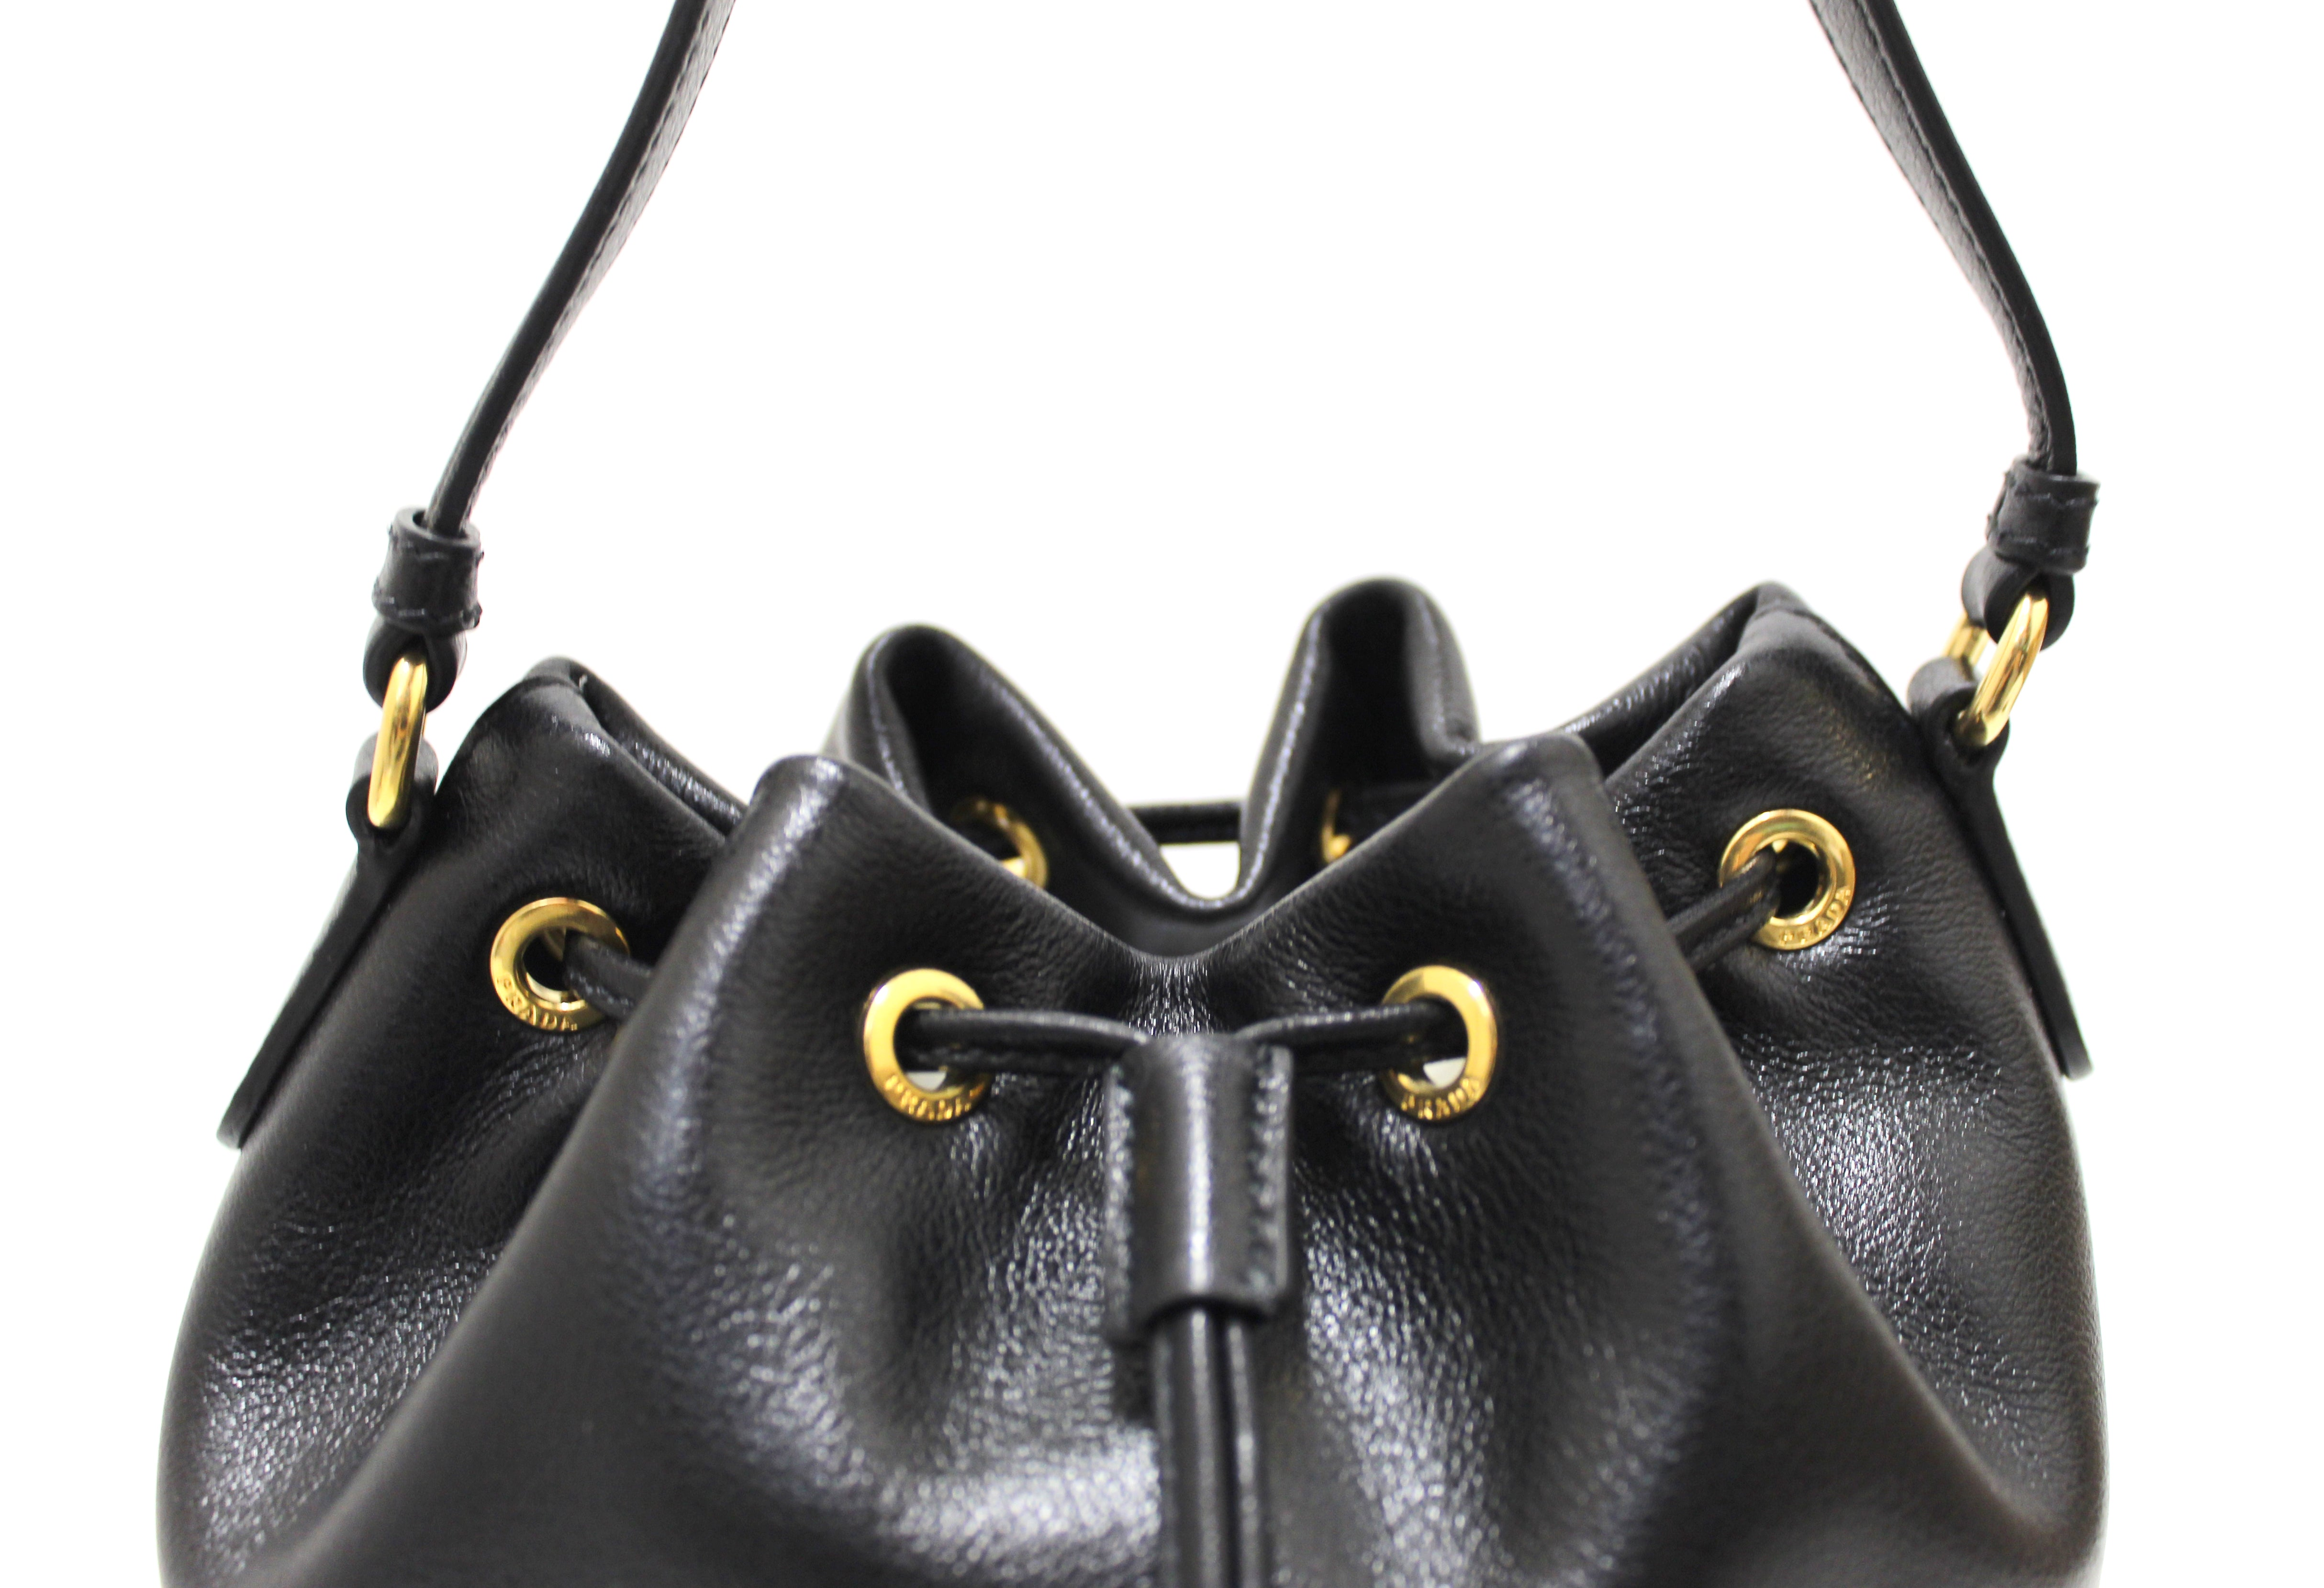 Authentic New Prada Black Calf Leather Duet Drawstring Bucket Messenger Bag 1BH038